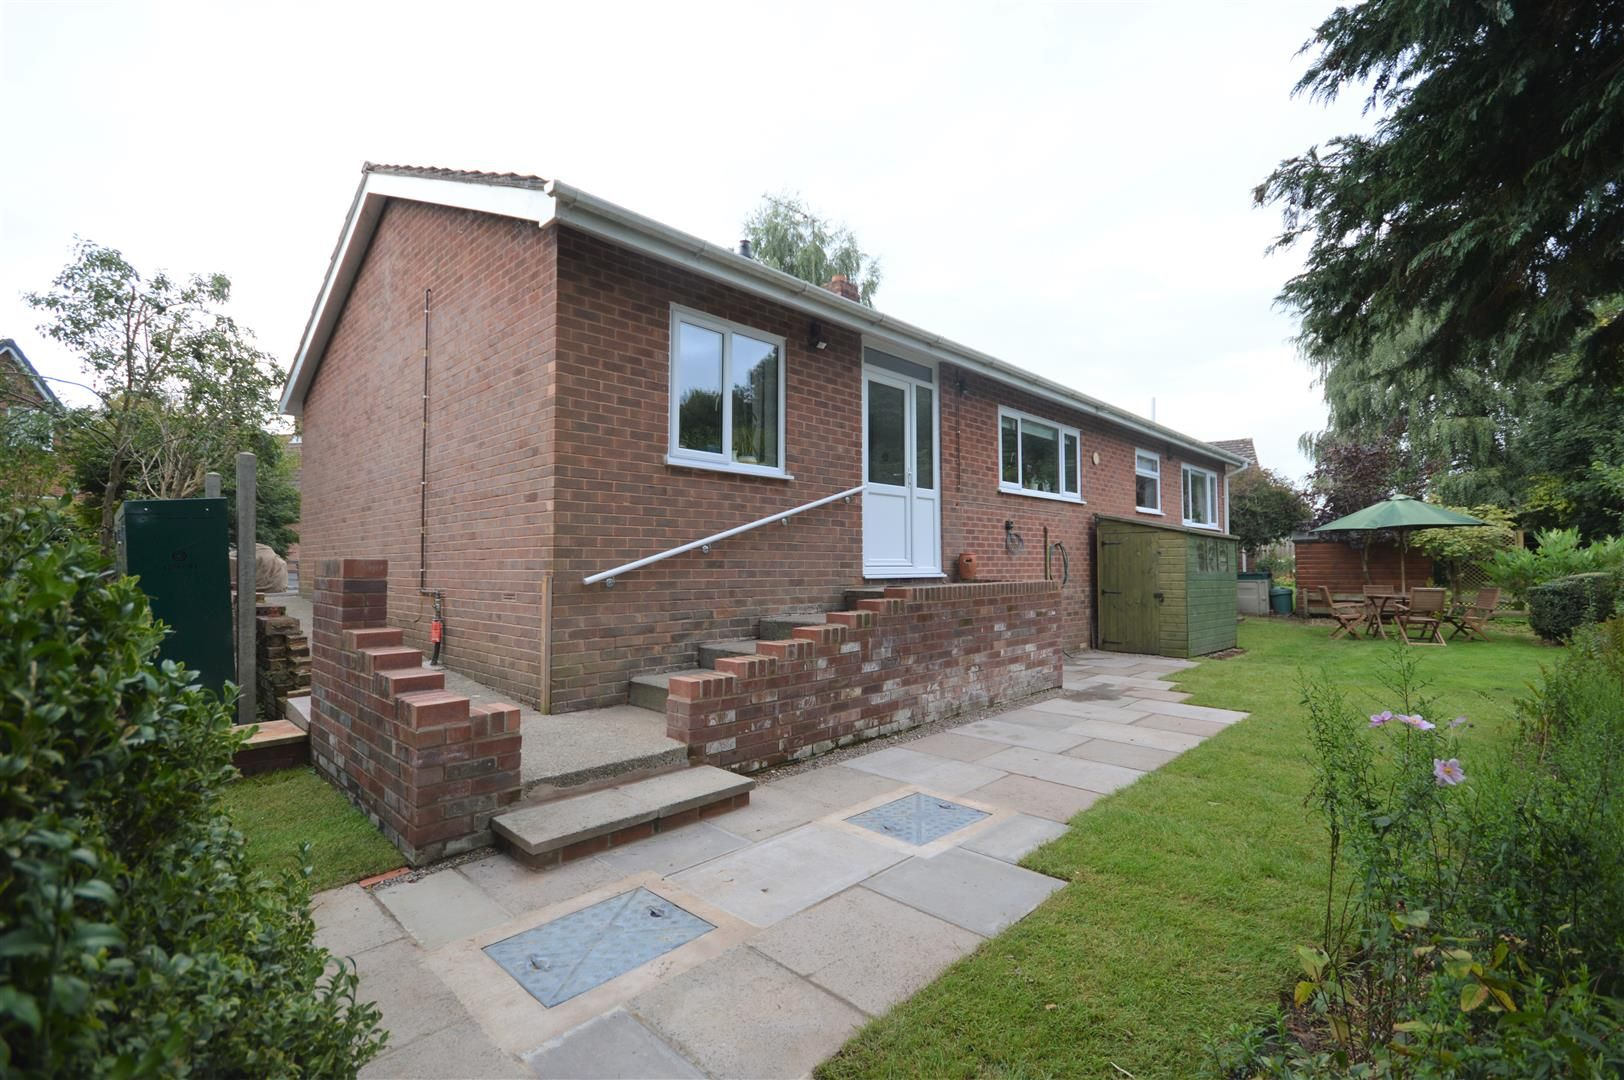 3 bed detached-bungalow for sale in Orleton  - Property Image 14